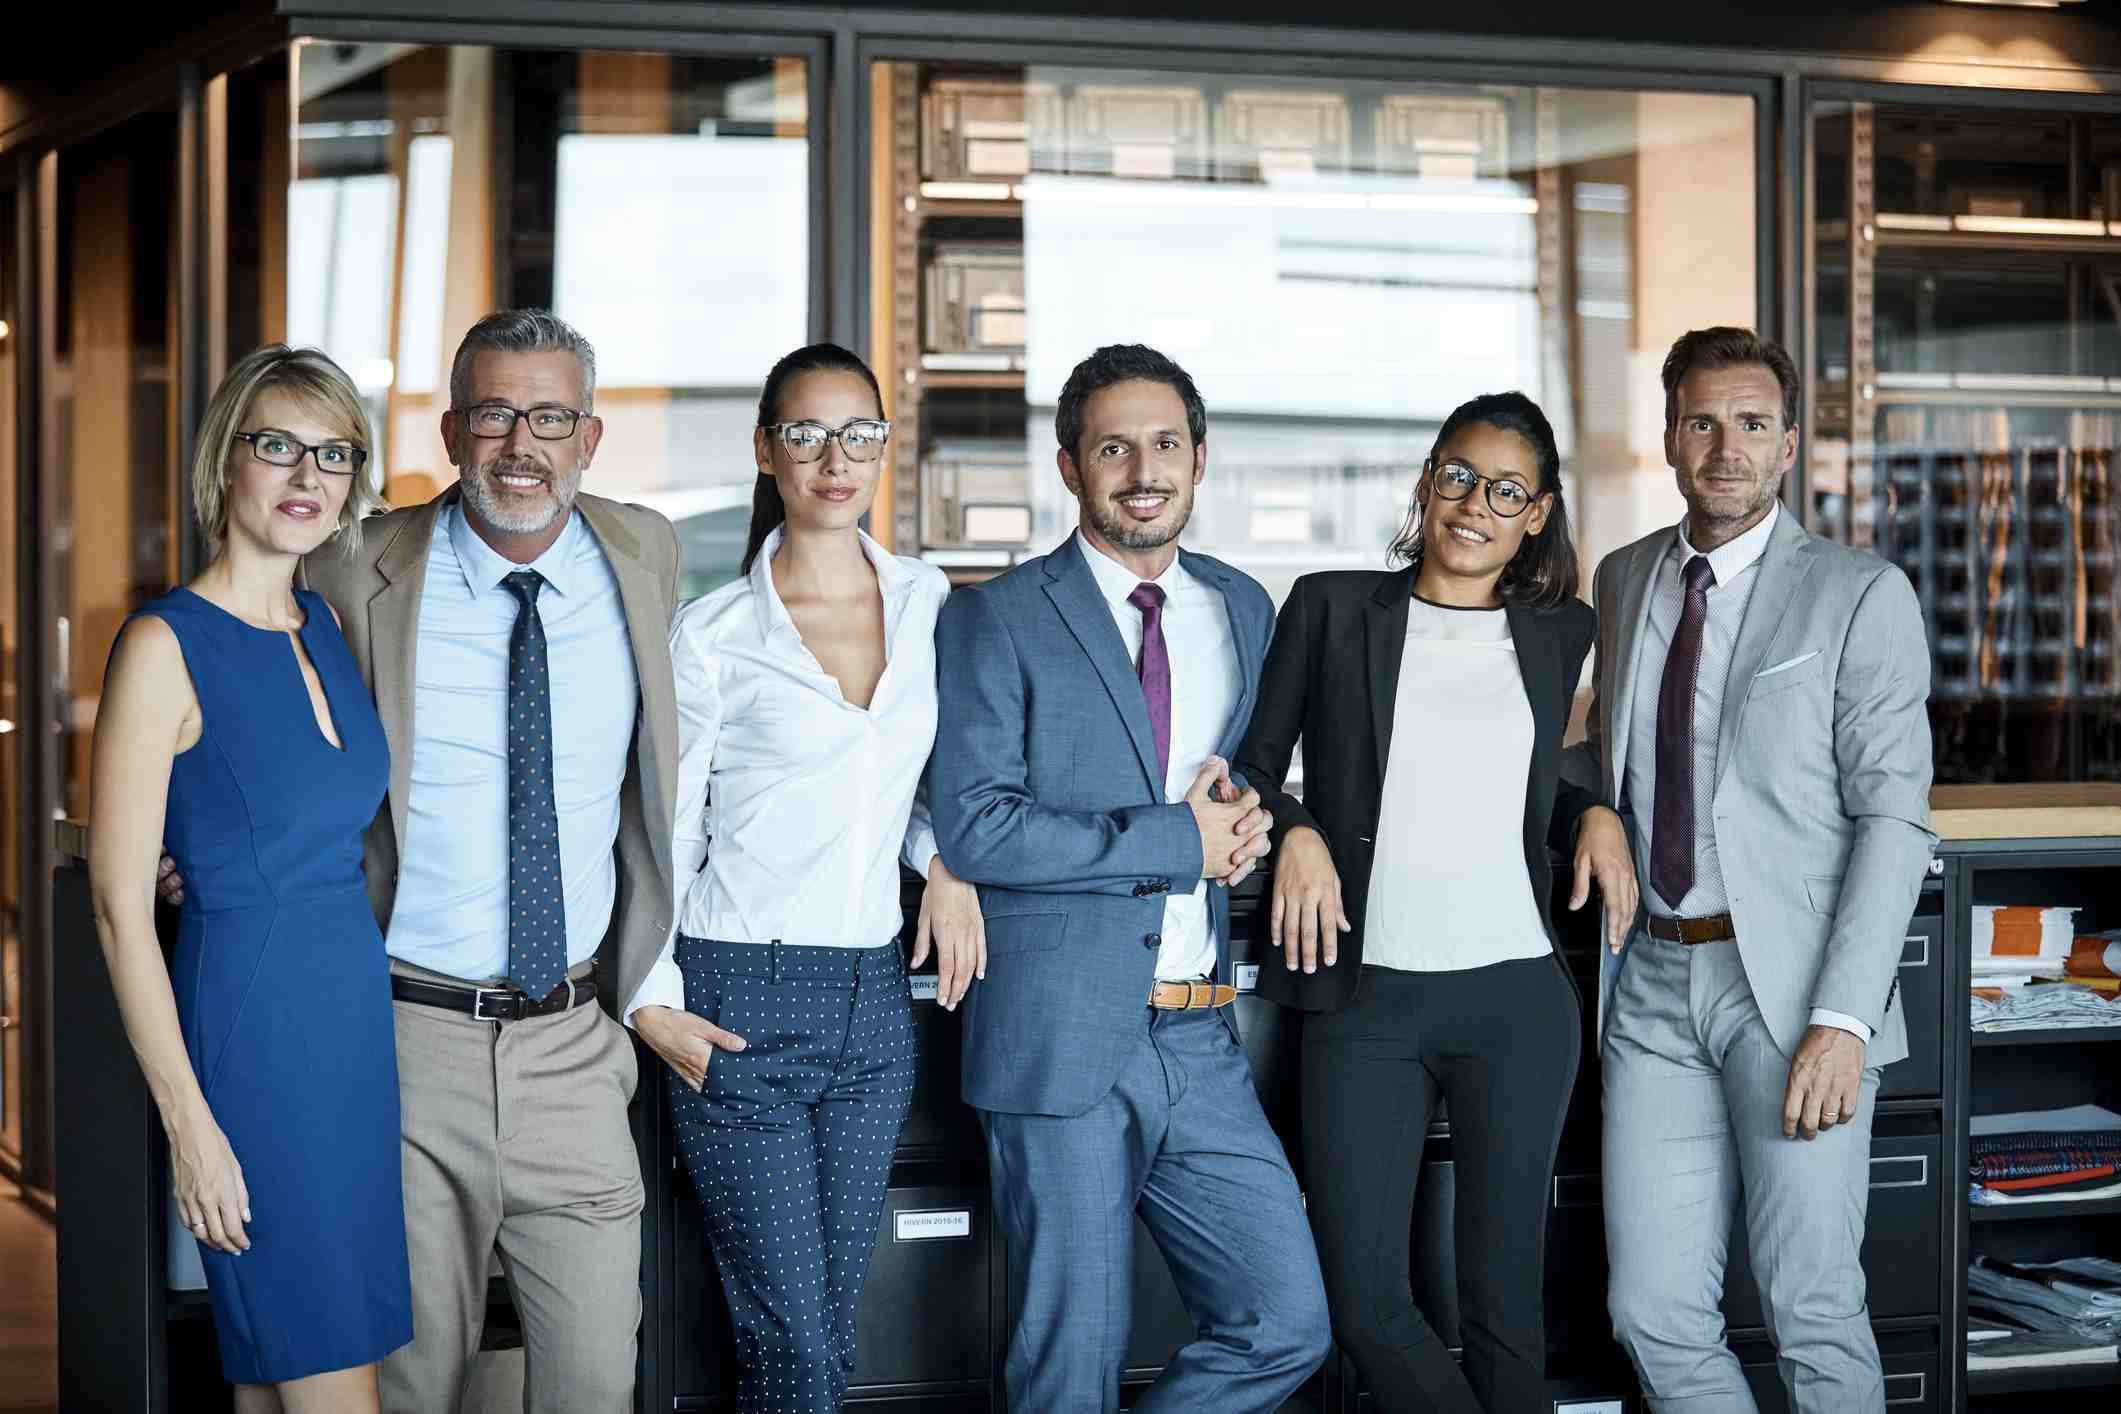 Group of co-workers posing in smart-casual business wear